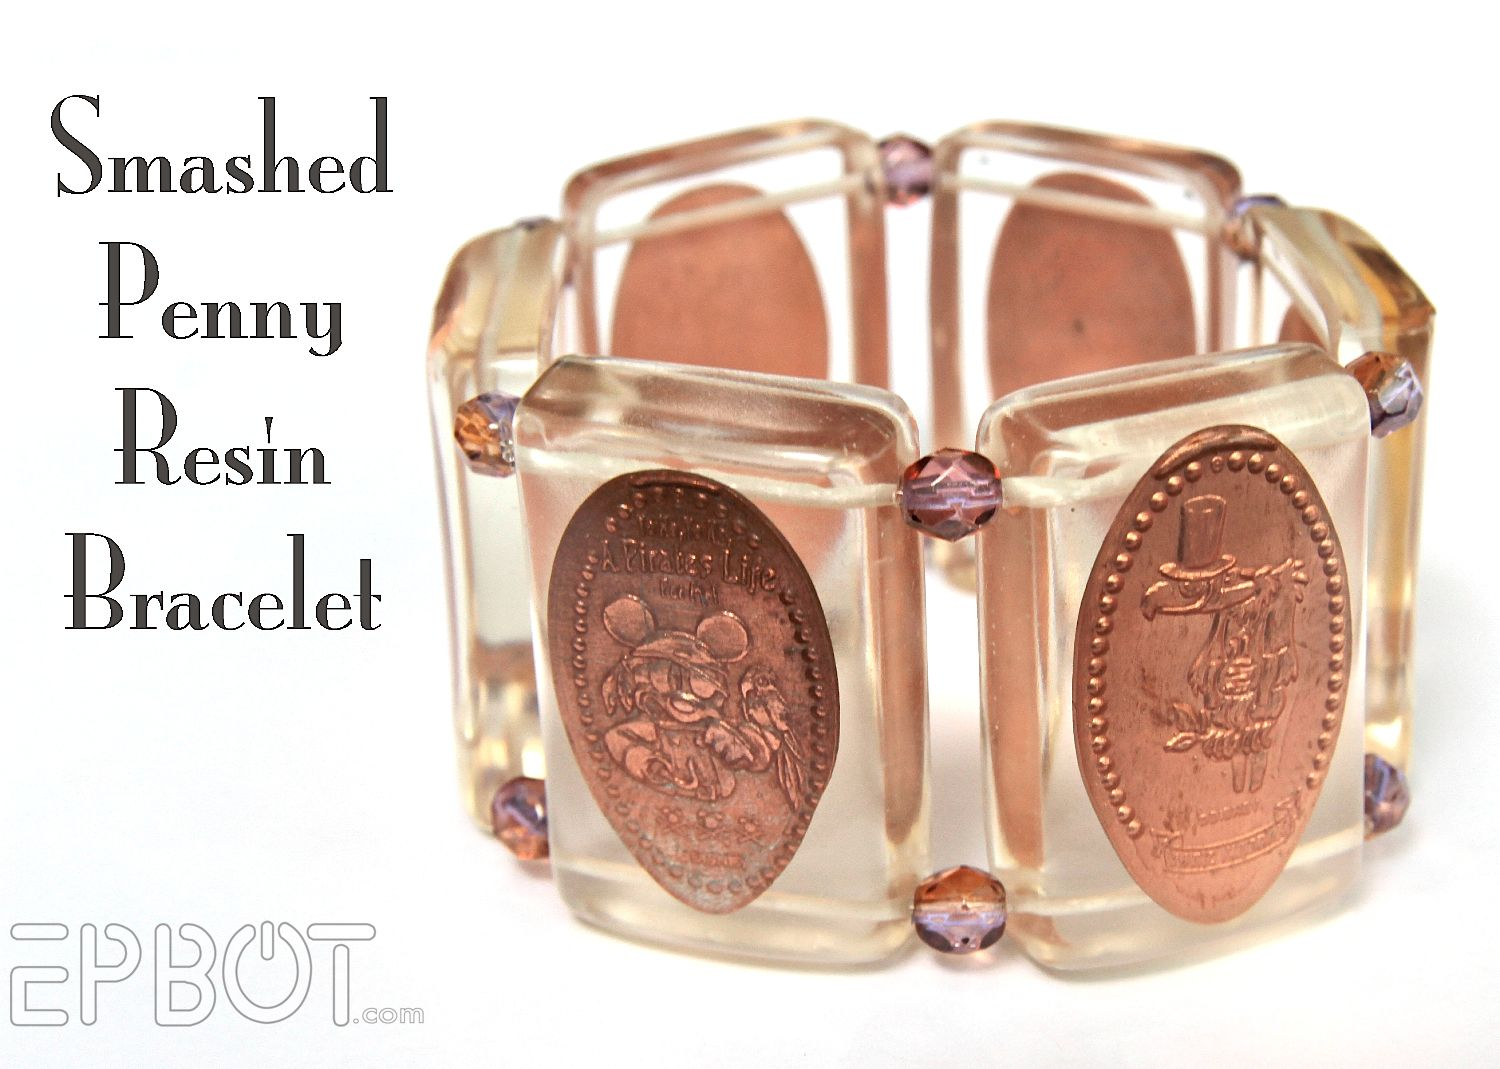 Smashed Penny Resin Bracelet-Relatively simple-don't know if I'll actually ever do it...but I have a lot of smashed pennies from Disney parks, so the pin is worth a save if I ever get the urge to do something with them. Also, this is really cute and super cool.